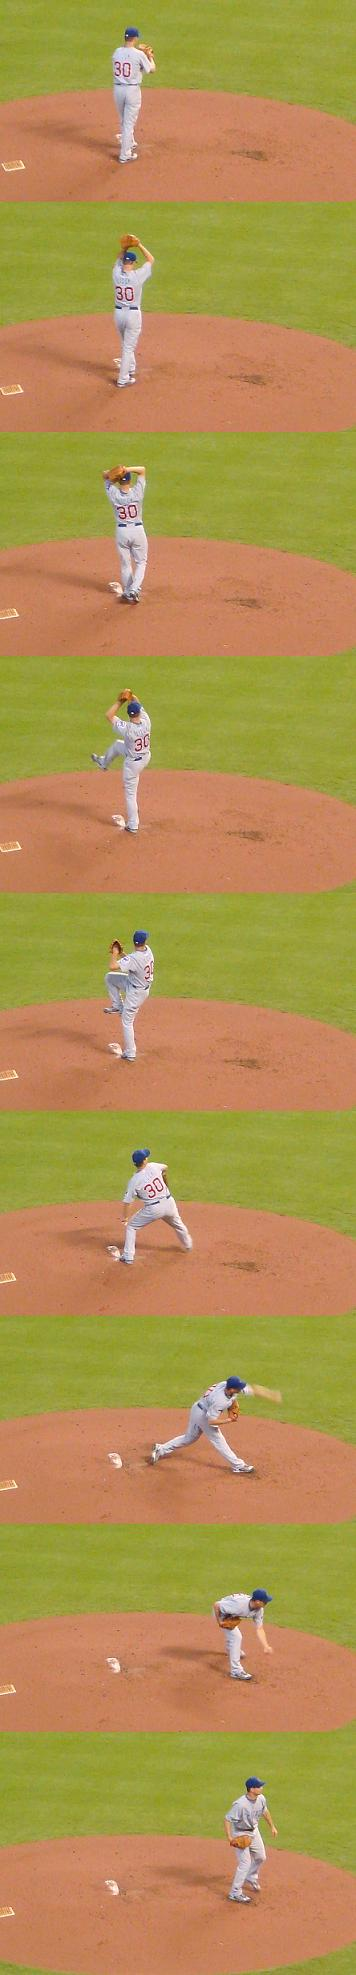 Lilly pitching.jpg